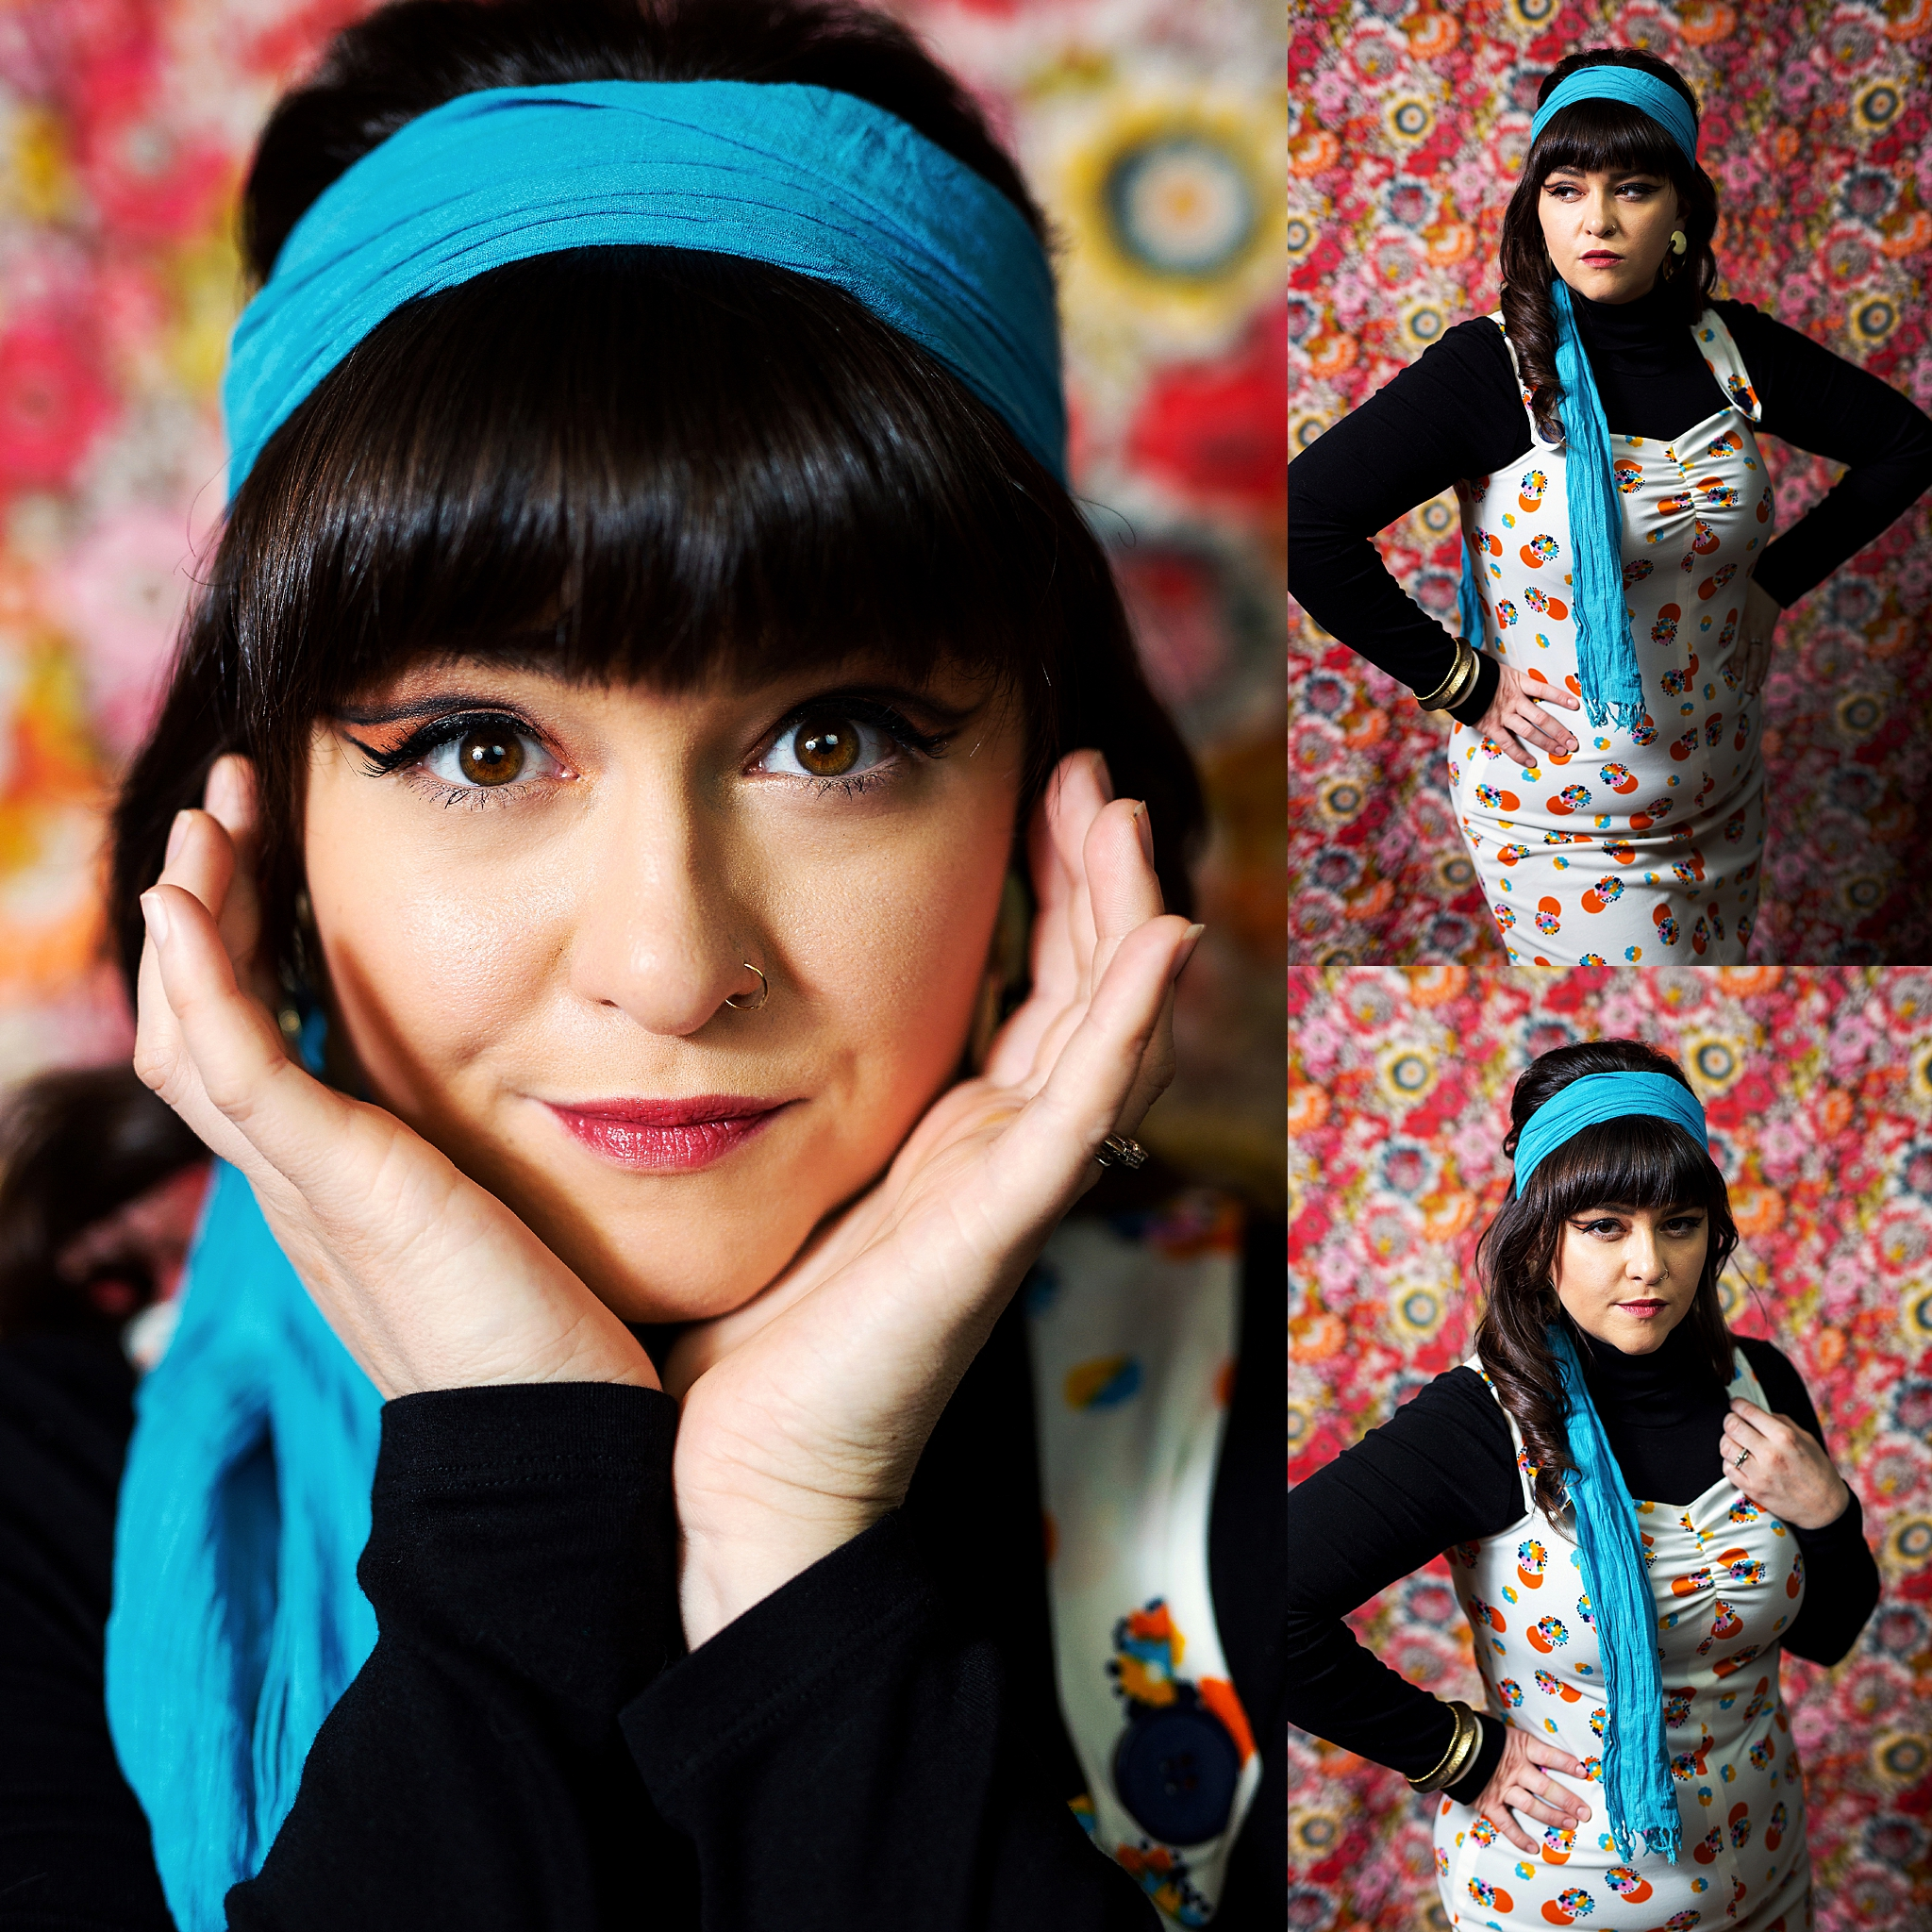 Retro Styling on a Floral Backdrop Pittsburgh Photography Studio Photoshoot